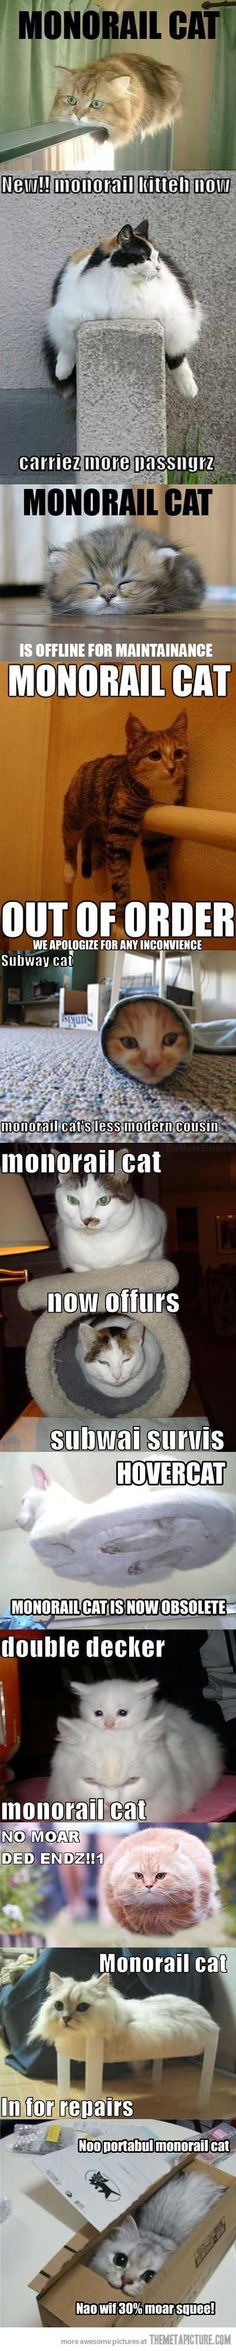 I love this funny cat #funnycatmeme #funnycats #cats find more funny cats here http://www.funnycatsblog.com